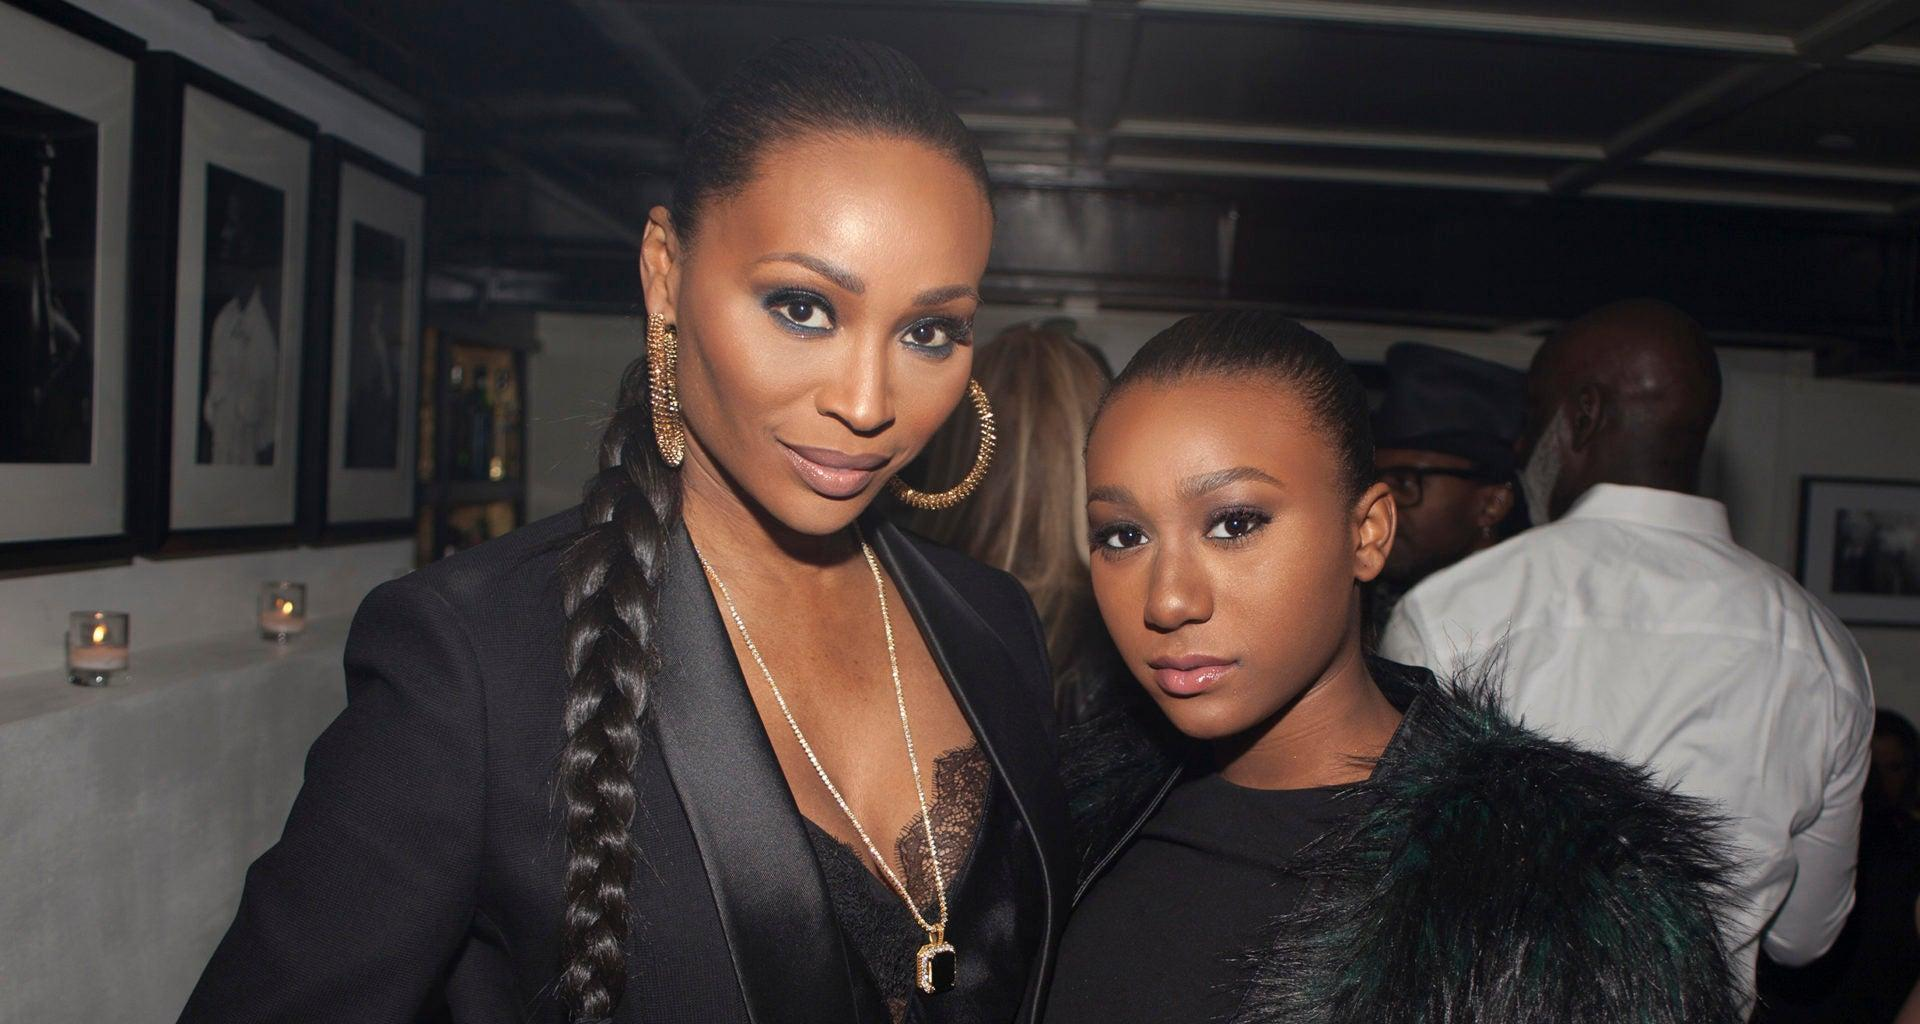 Cynthia Bailey's Daughter, Noelle Robinson Tells Her Mom She's Proud Of Her And Makes Her Day